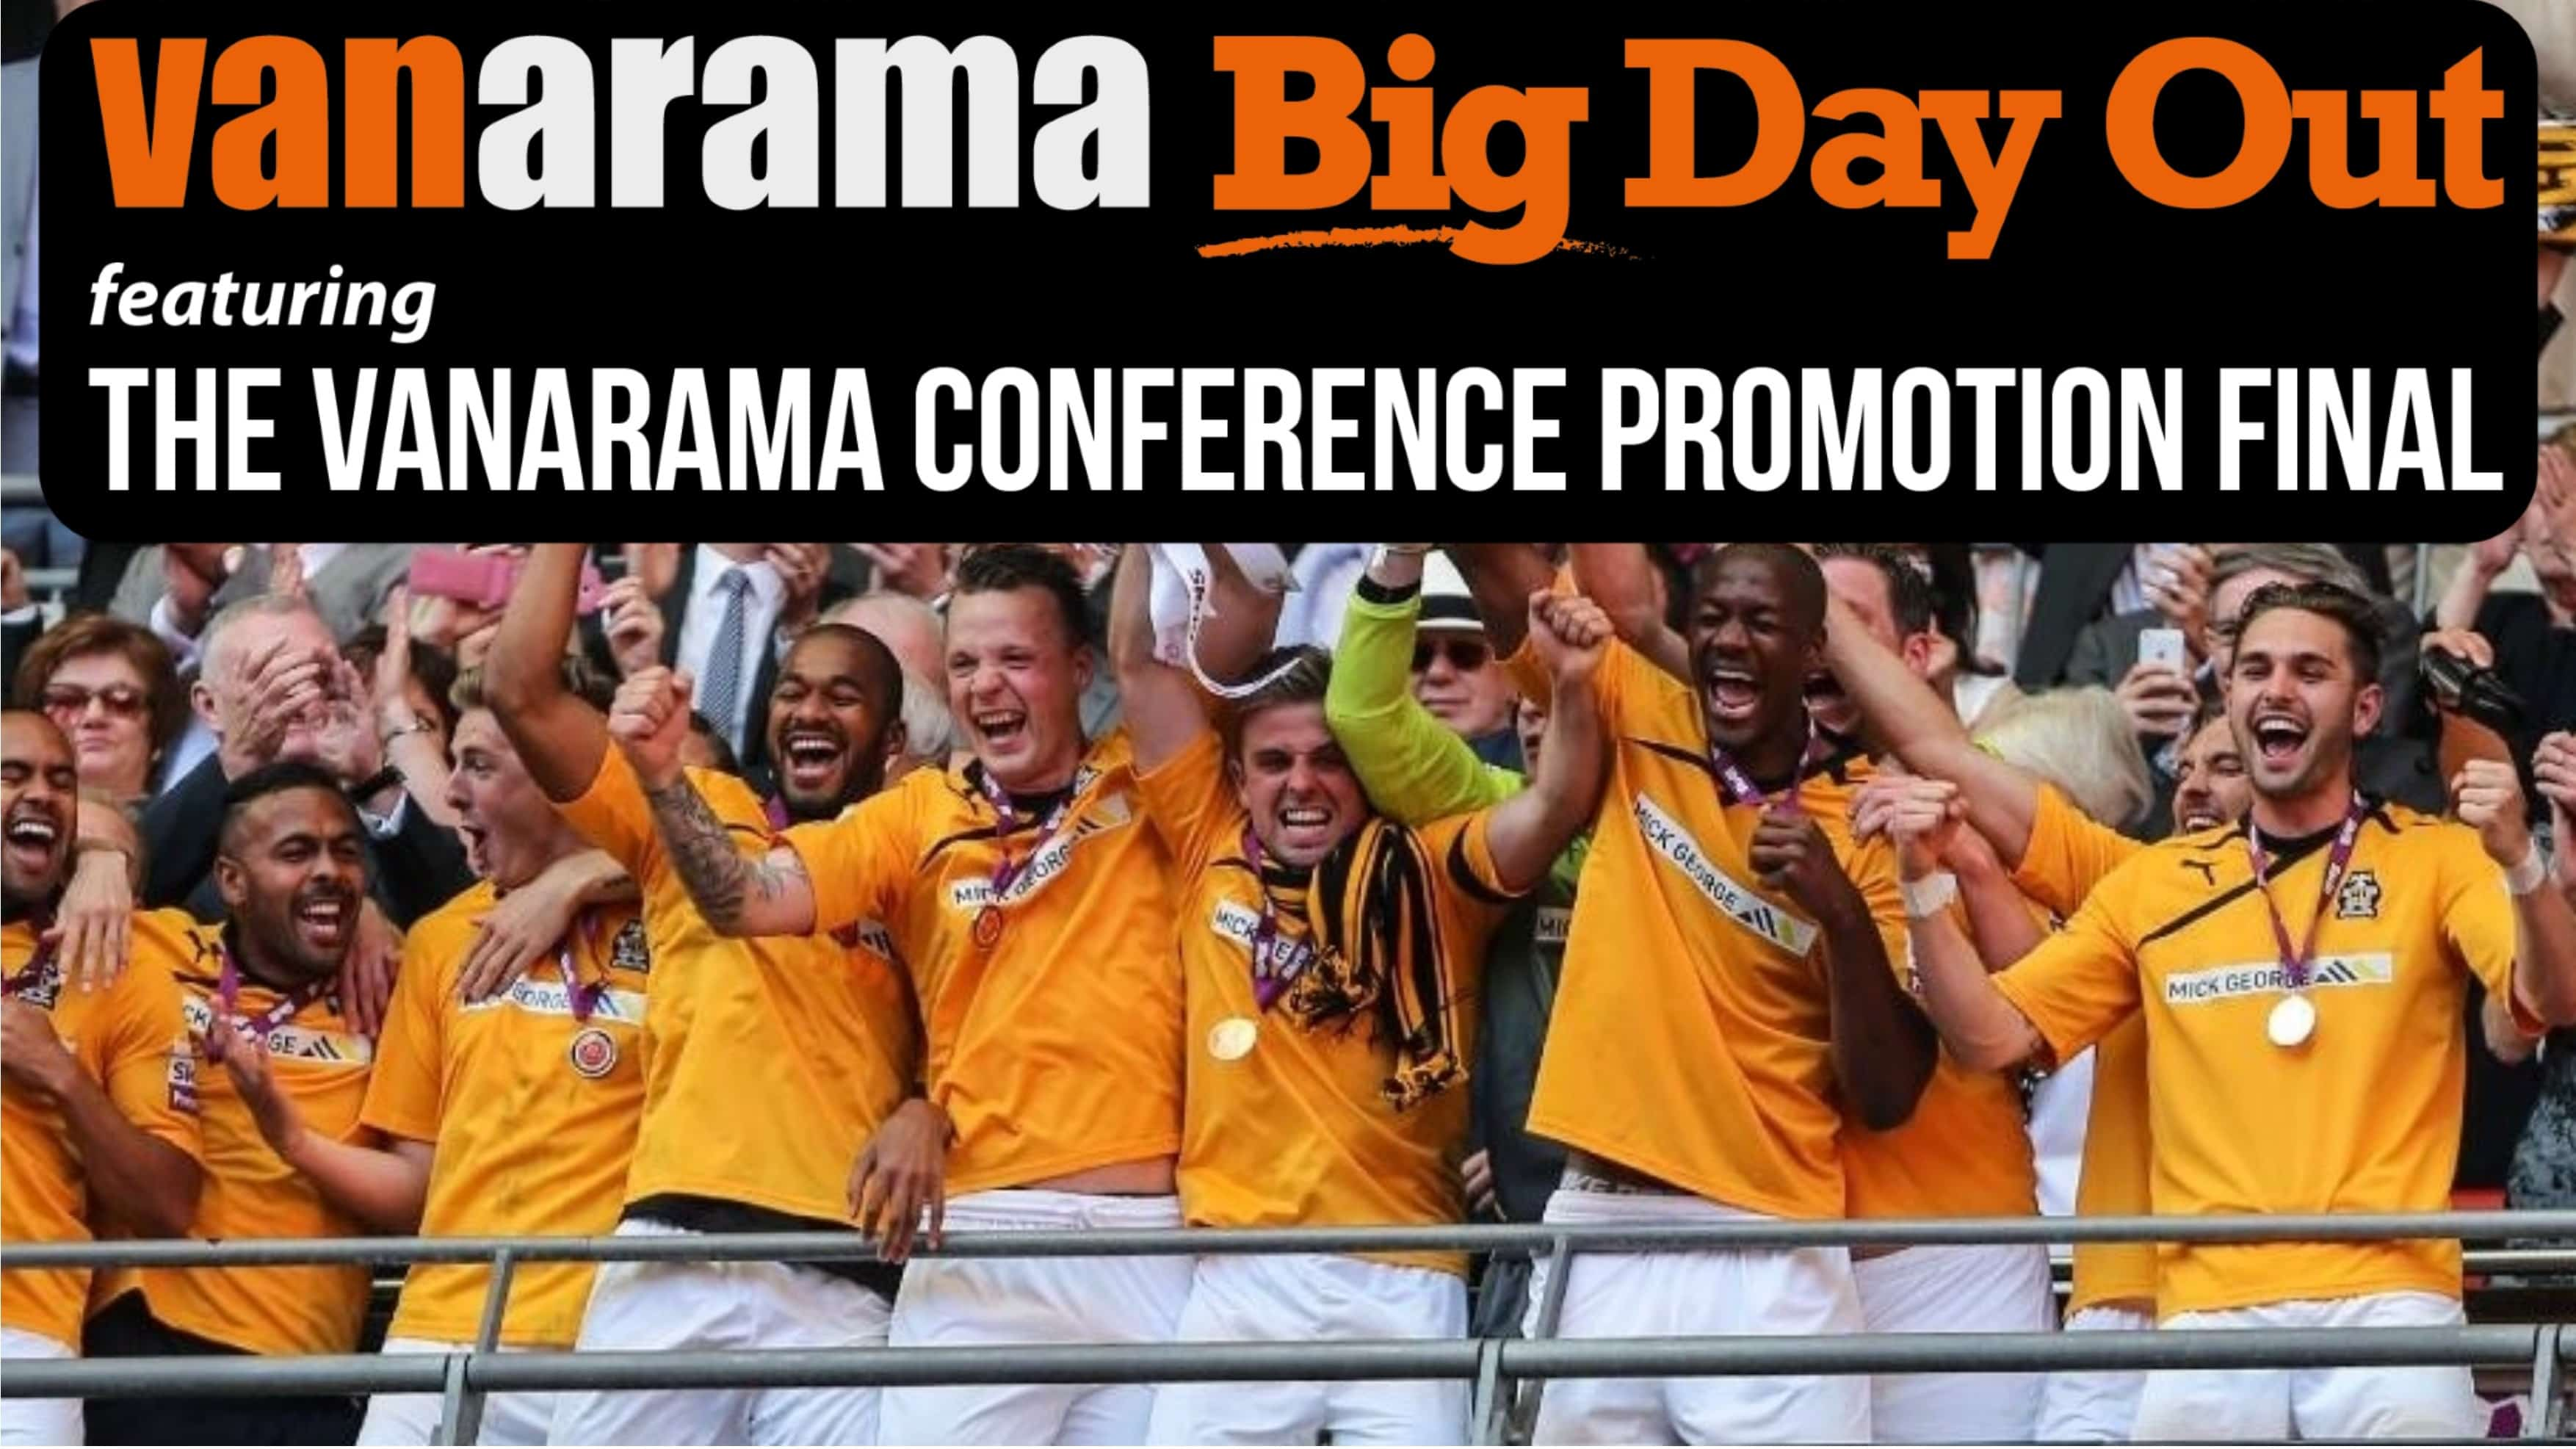 Vanarama Big Day Out 1